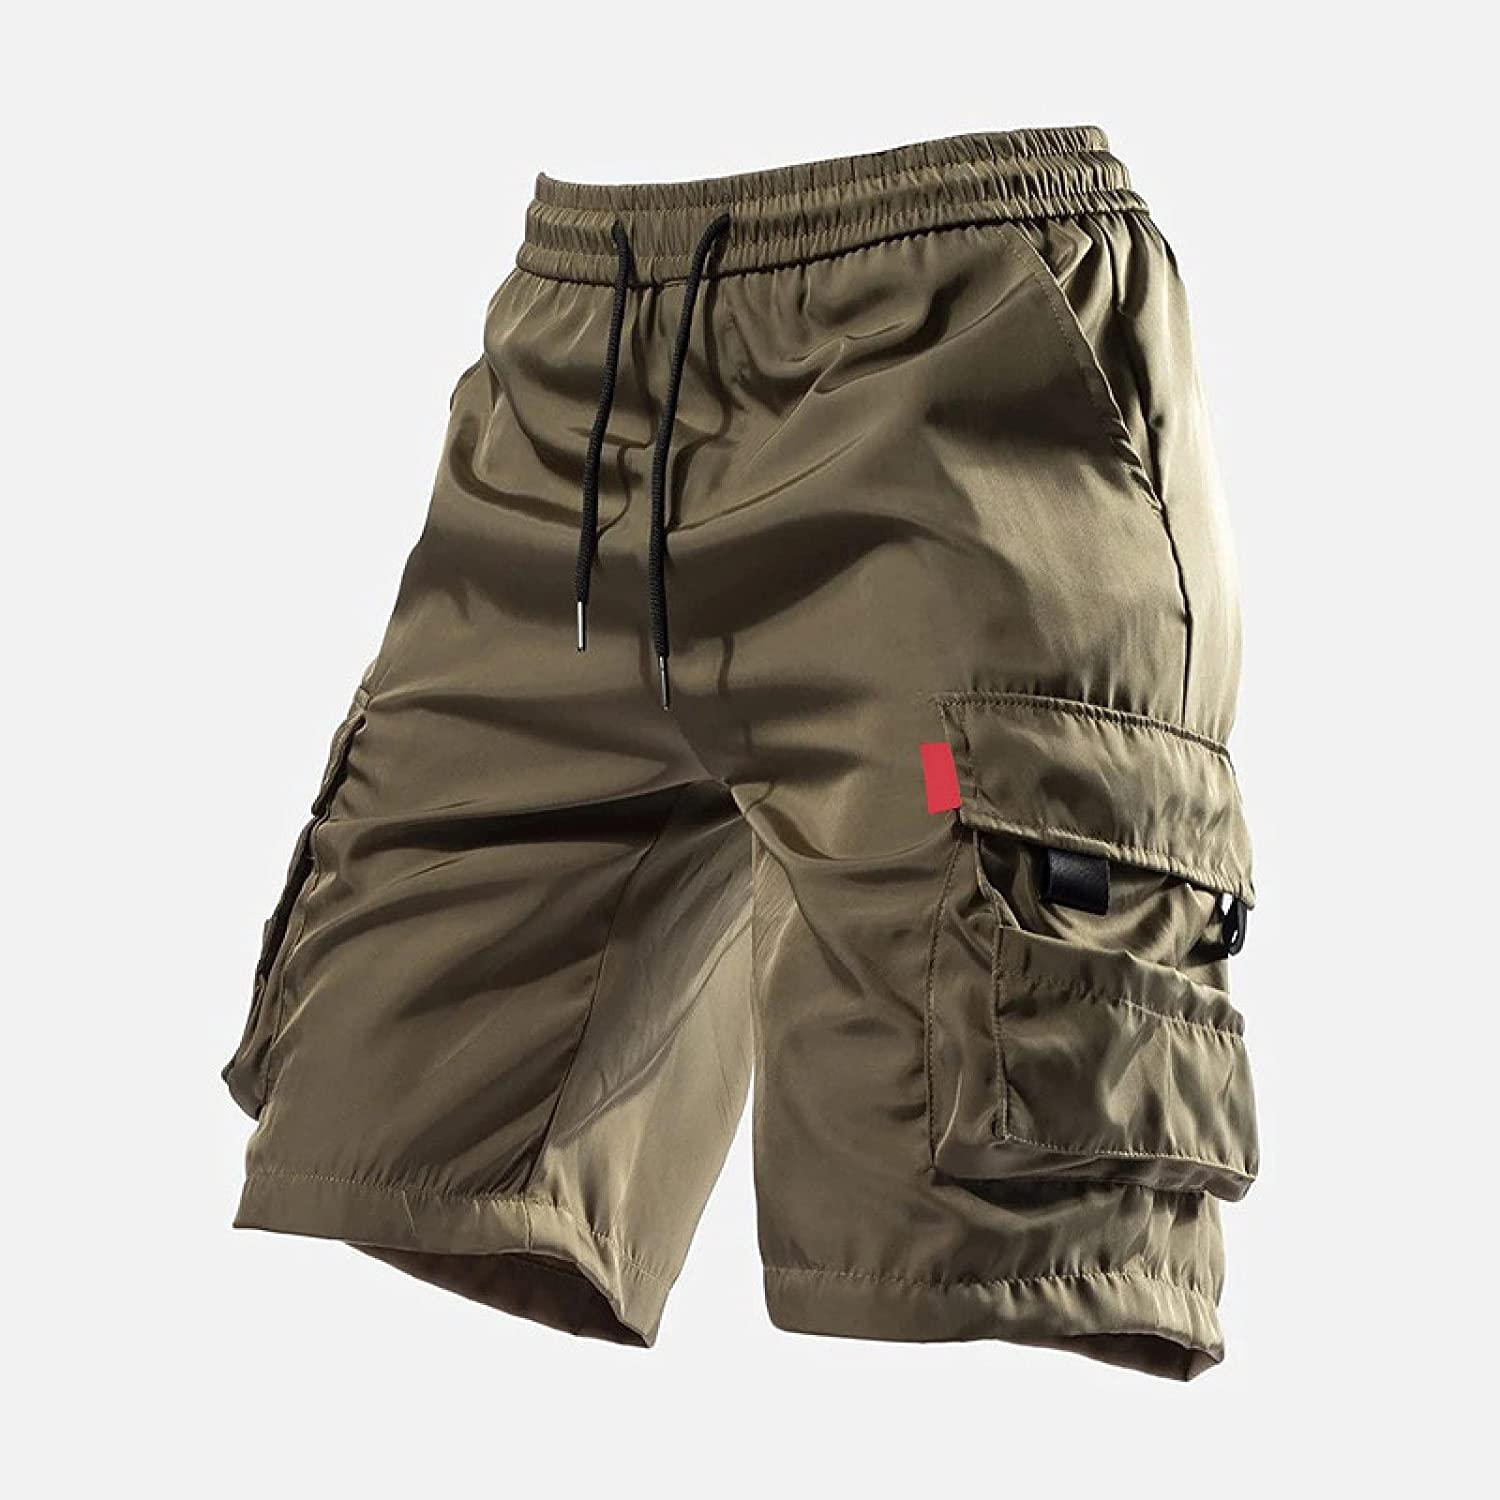 gfdrt Men's Summer Shorts Casual Sports Training Max 86% OFF Overall Outdoor Portland Mall